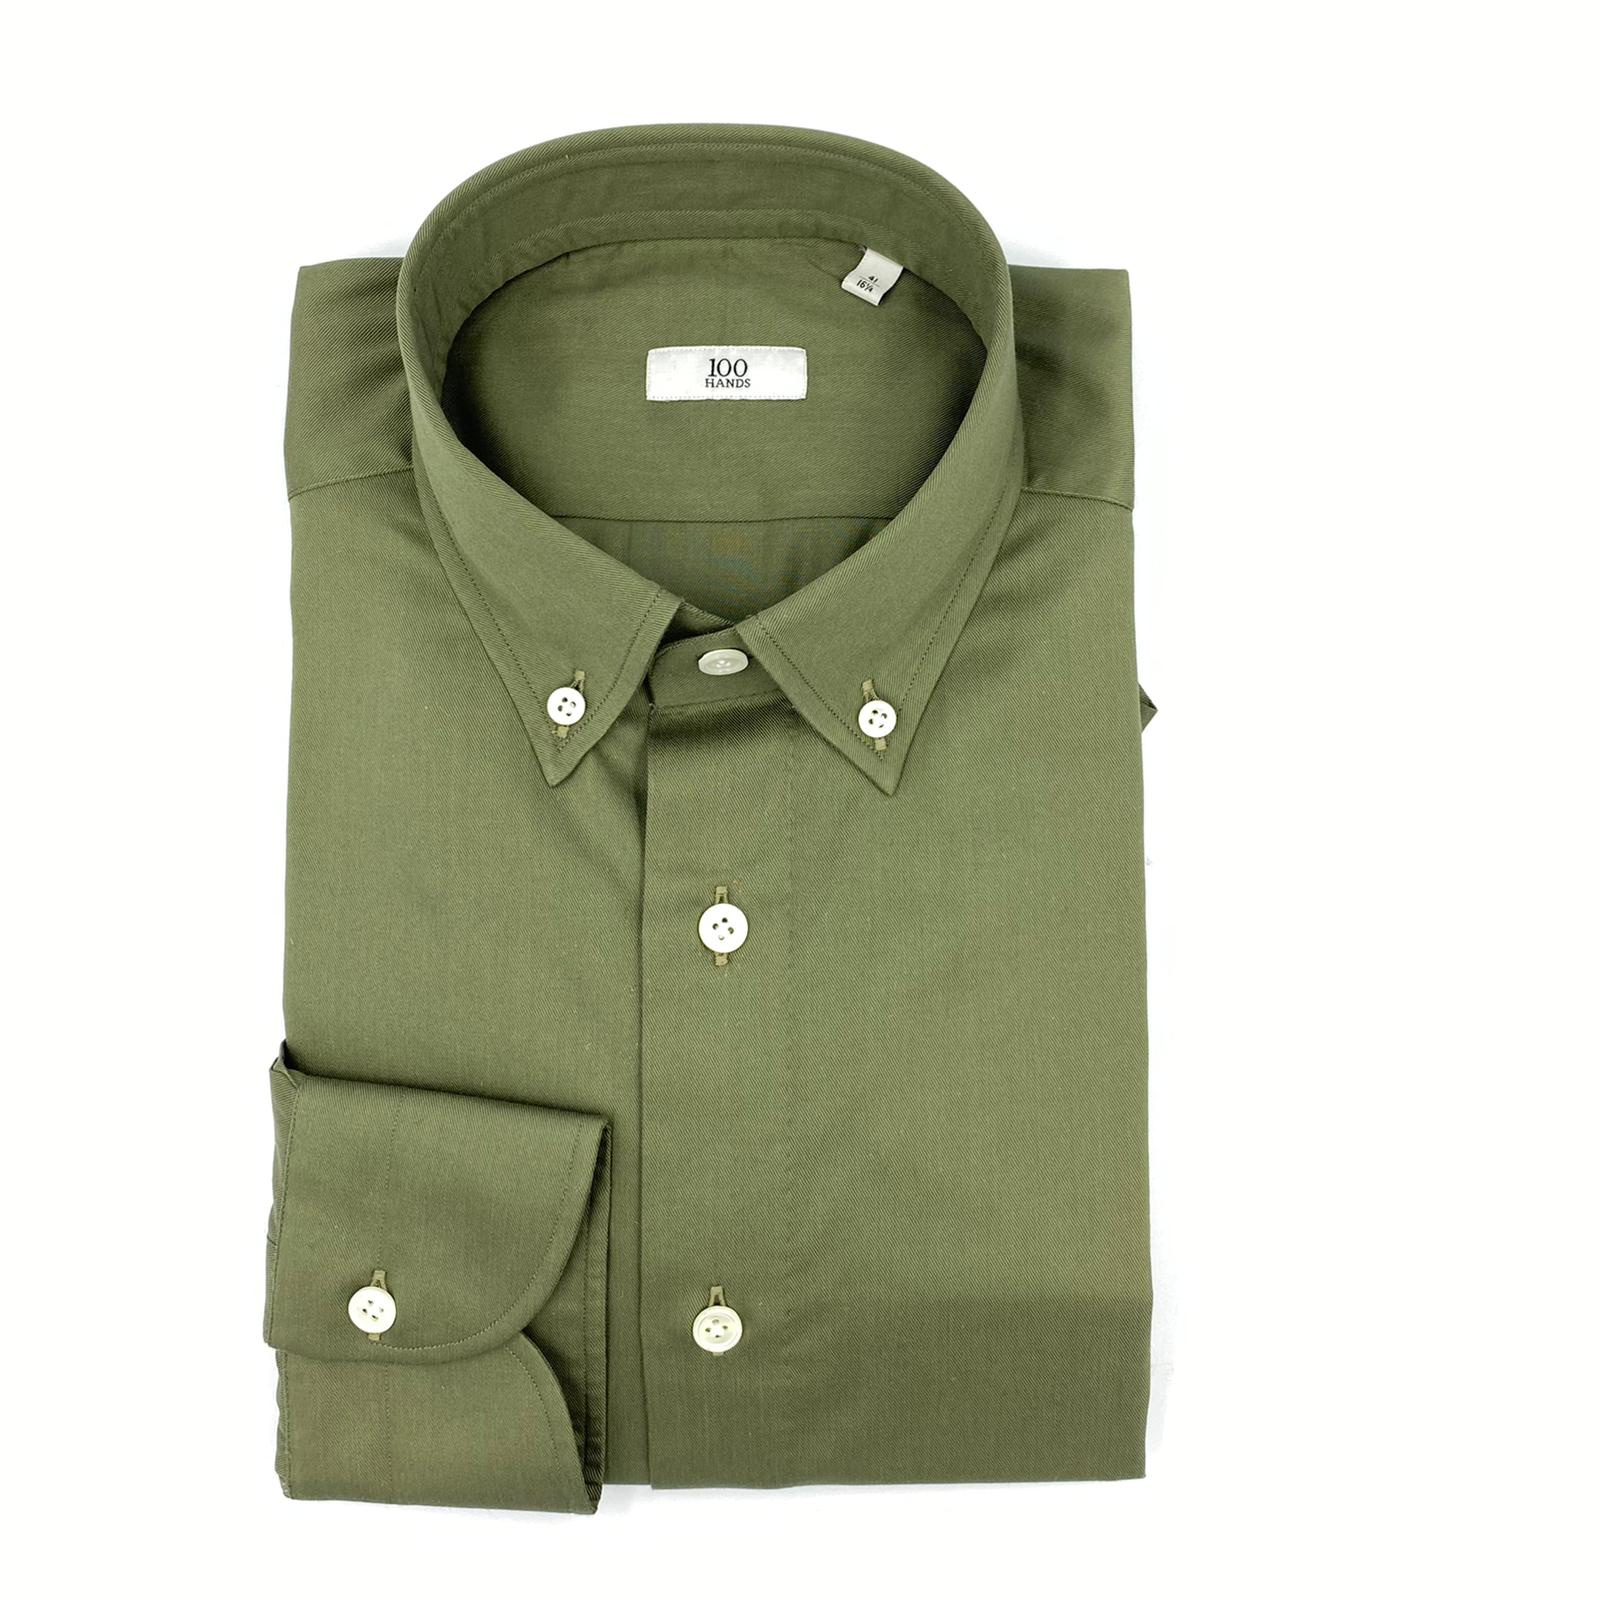 100 Hands Cotton Military Button down